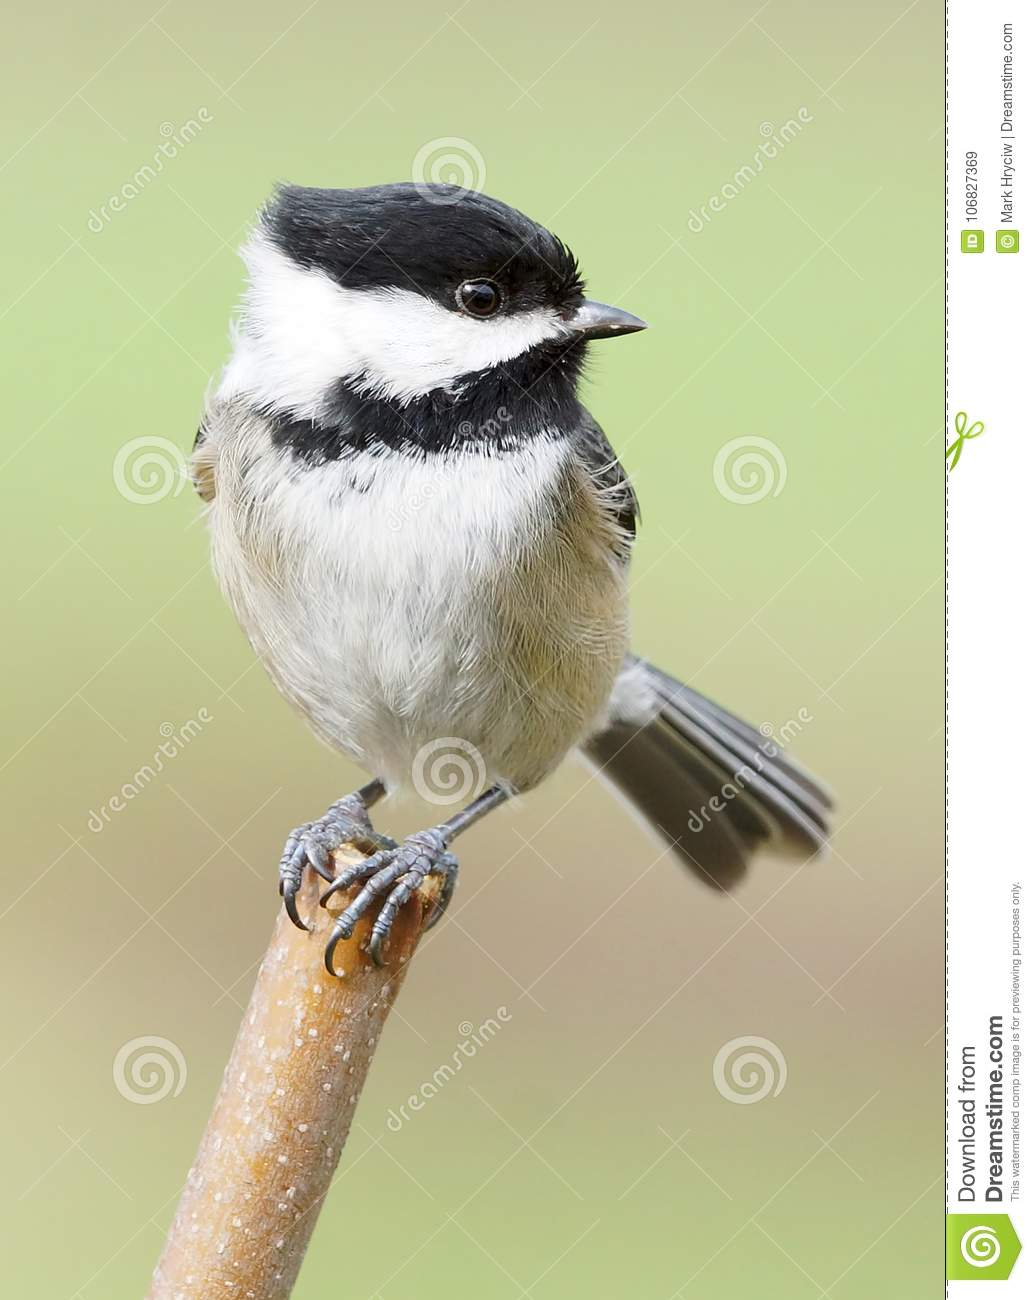 Black-Capped Chickadee Balancing Perched On A Stick On A Windy Day